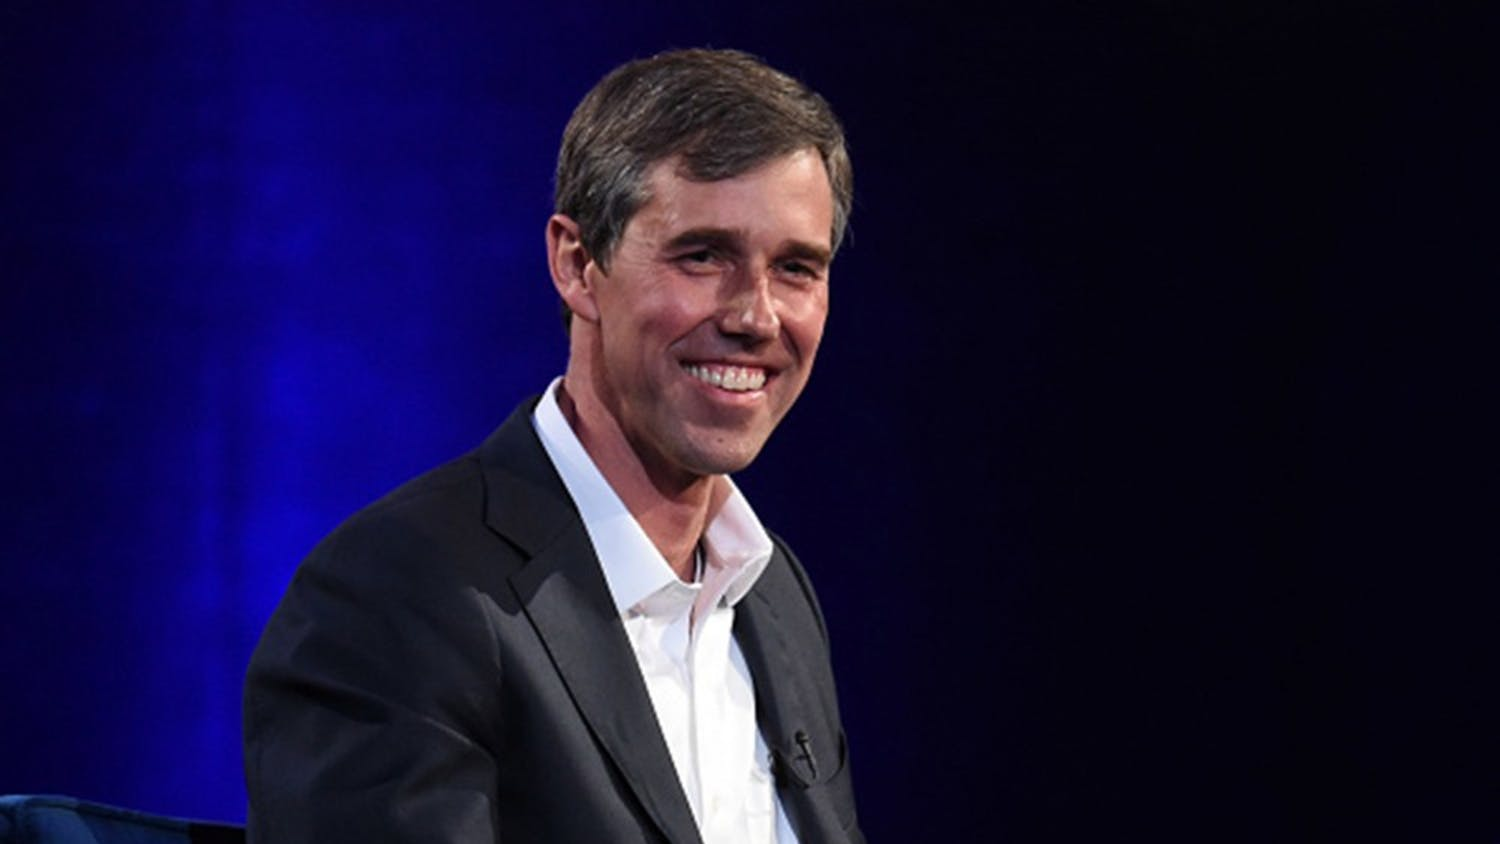 El Paso's ranking among the safest cities in the U.S. has been a long-running narrative for O'Rourke, a fact-check against Trump's exaggerated claims about danger on the border. (Jamie McCarthy/Getty Images/TNS)**FOR THIS STORY ONLY**